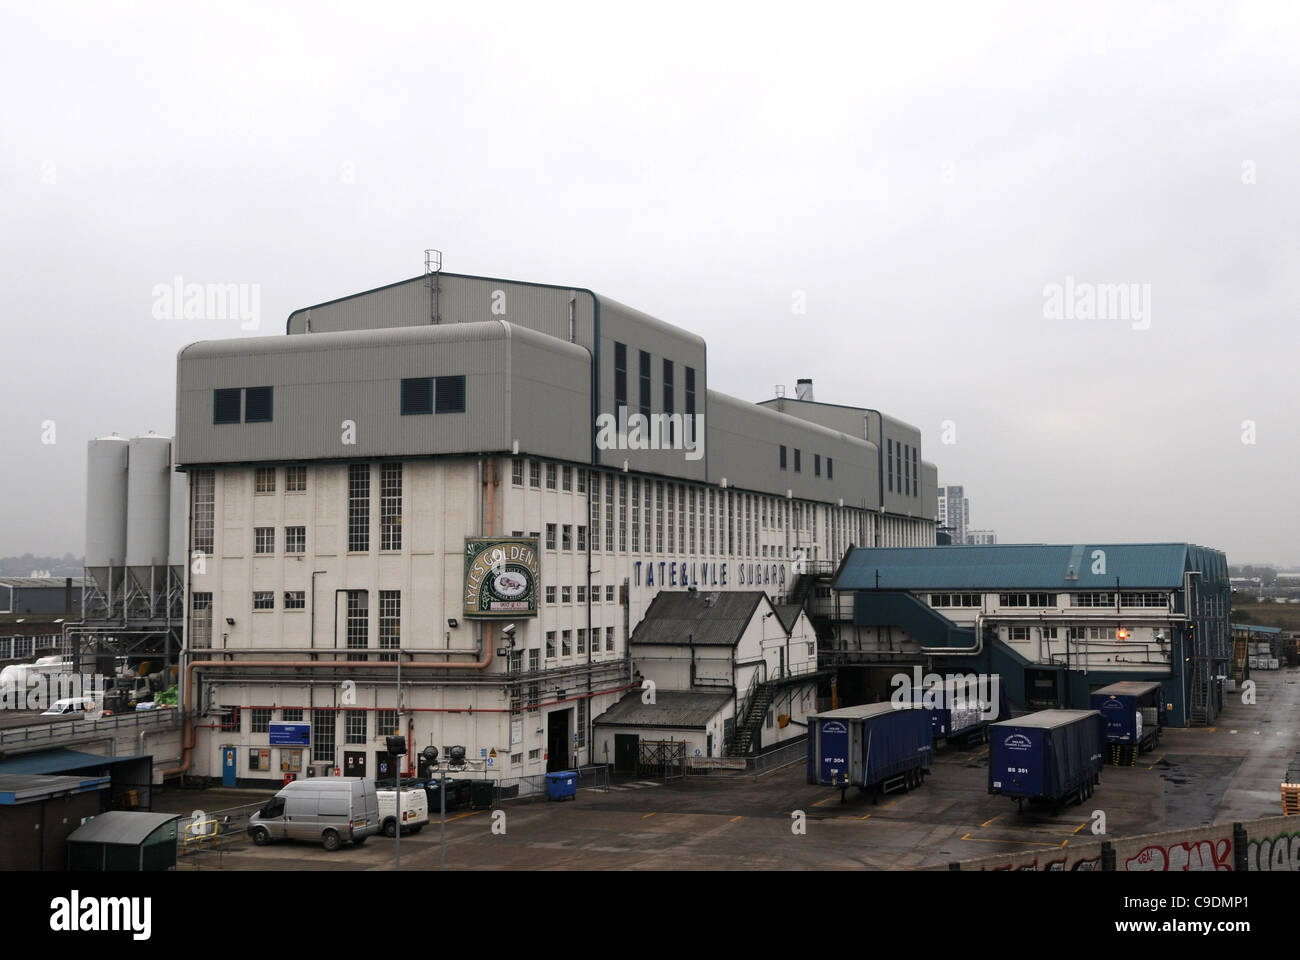 Tate and Lyle sugar factory situated at West Silvertown in east London, Britain, UK - Stock Image